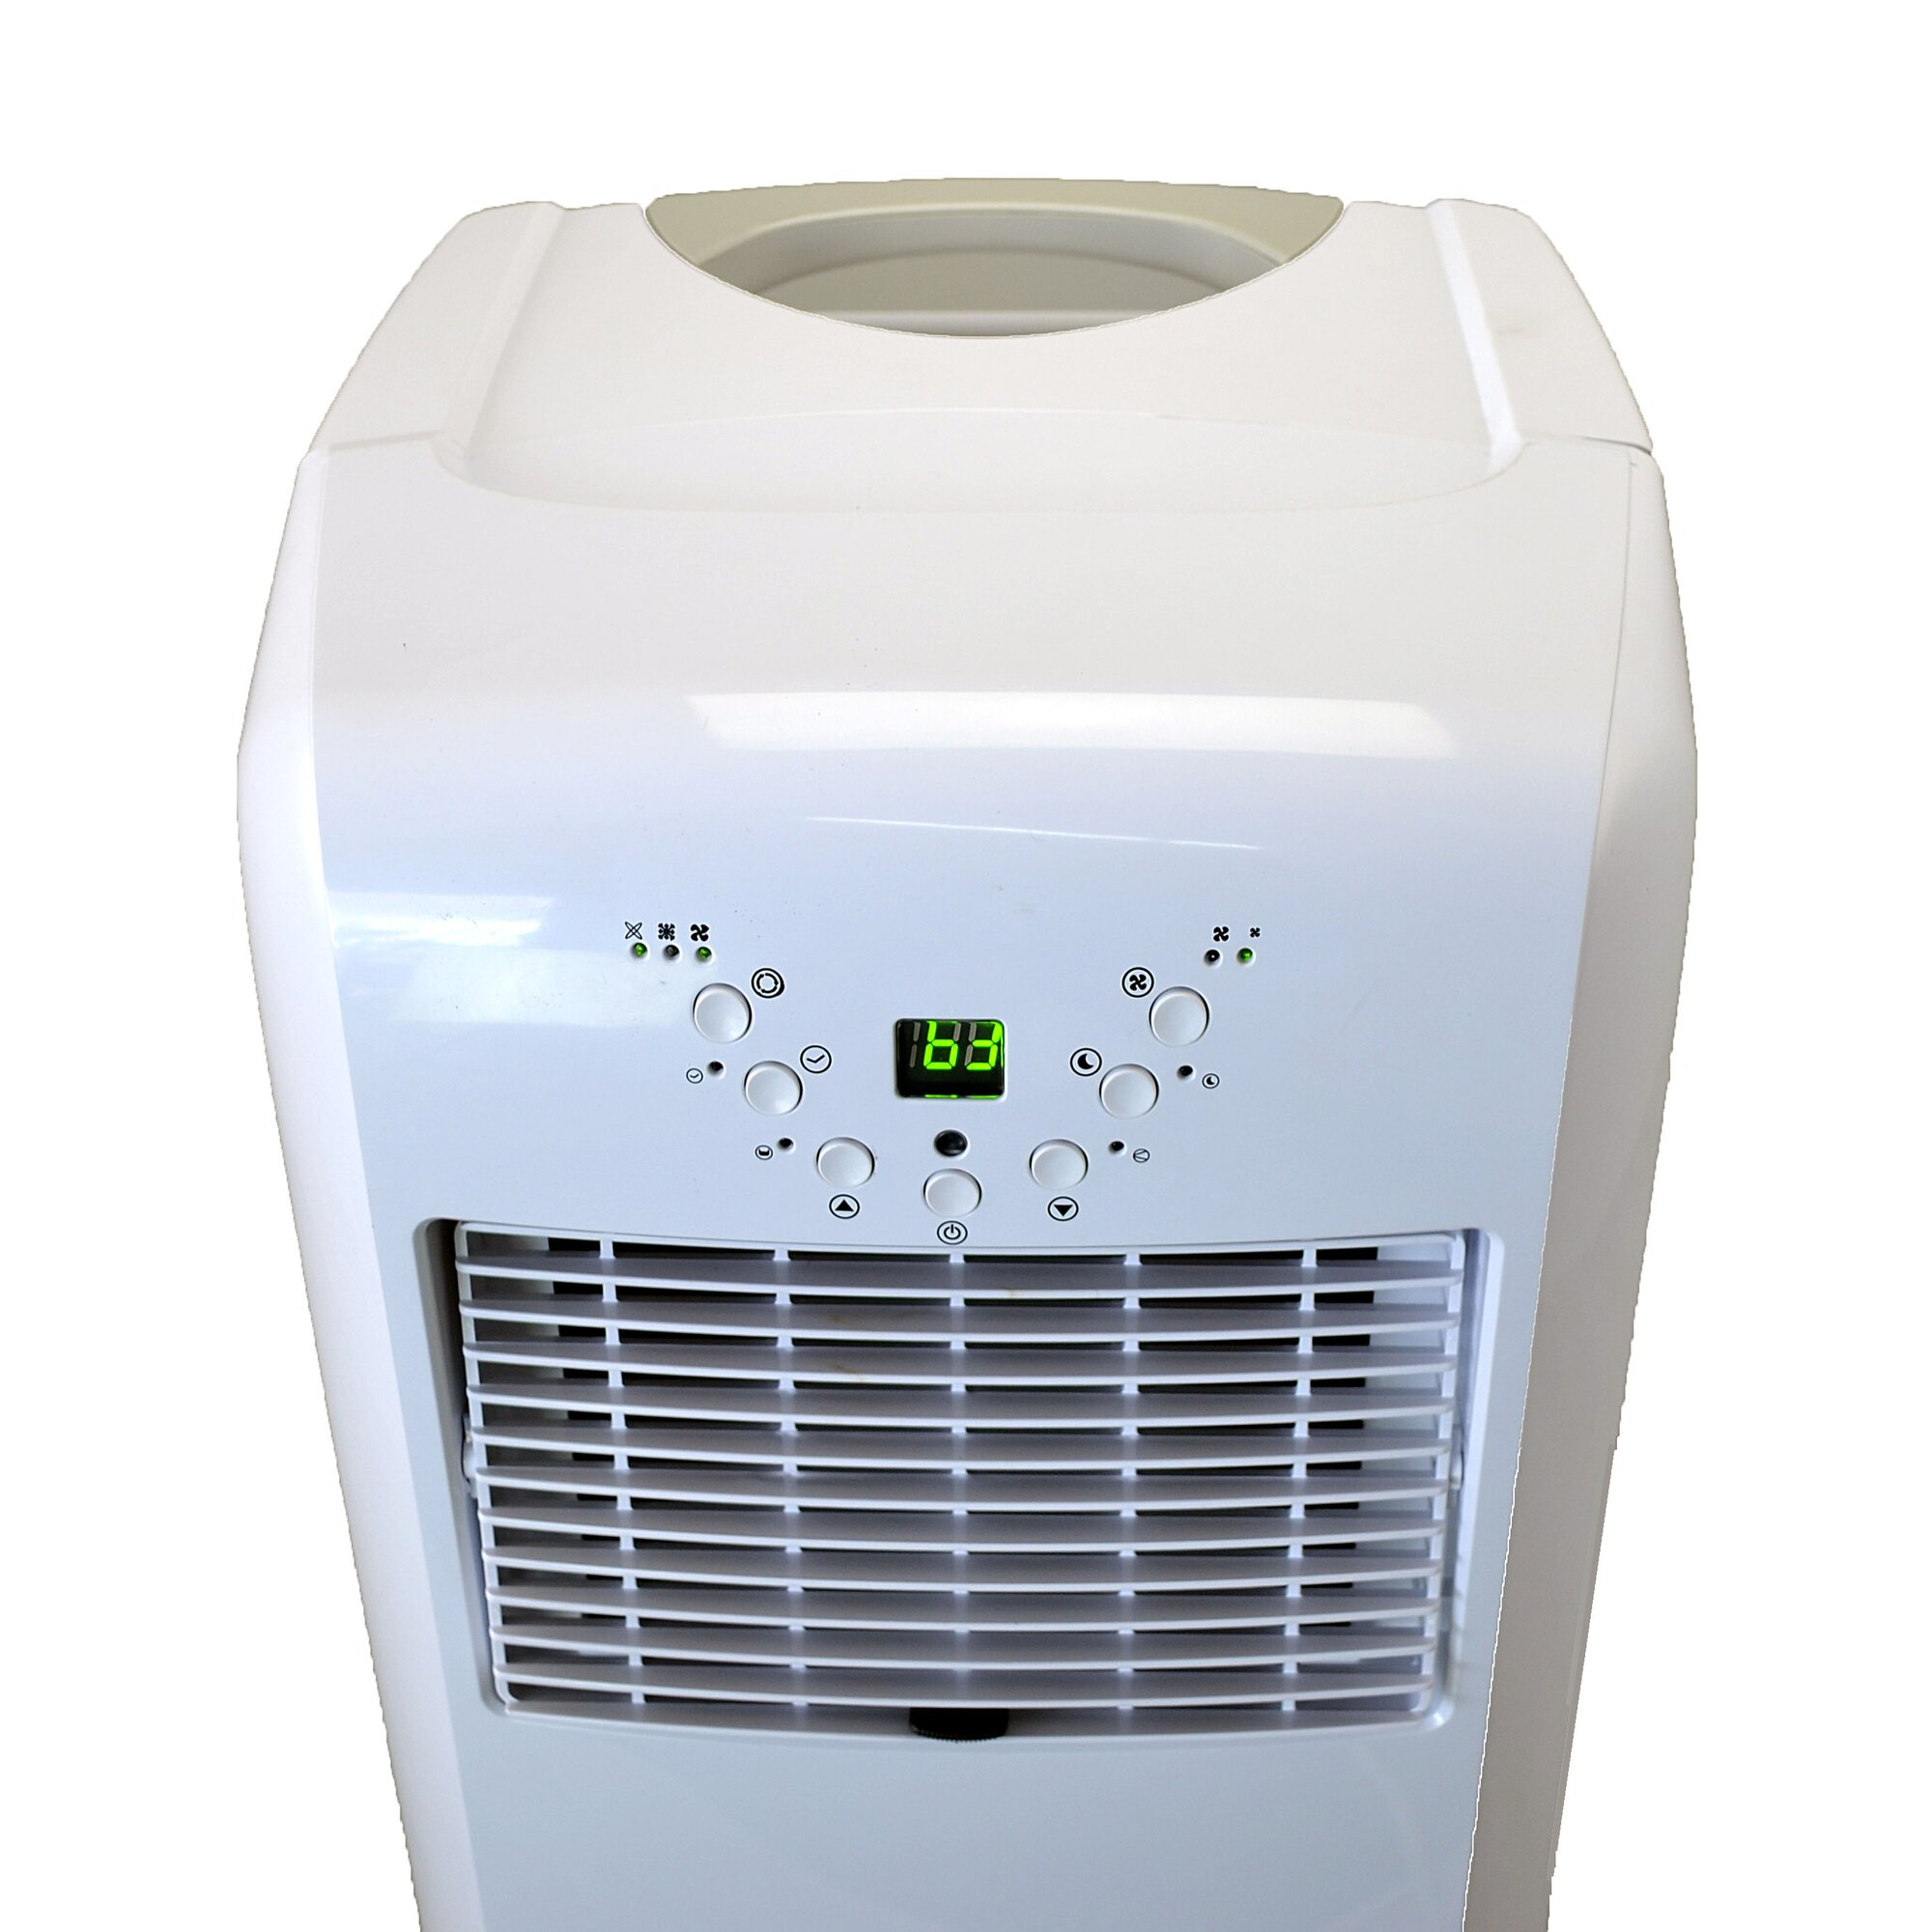 #3D7421 NewAir 10 000 BTU Portable Air Conditioner With Remote  Most Recent 13510 Portable Air Conditioner Ratings image with 2000x2000 px on helpvideos.info - Air Conditioners, Air Coolers and more